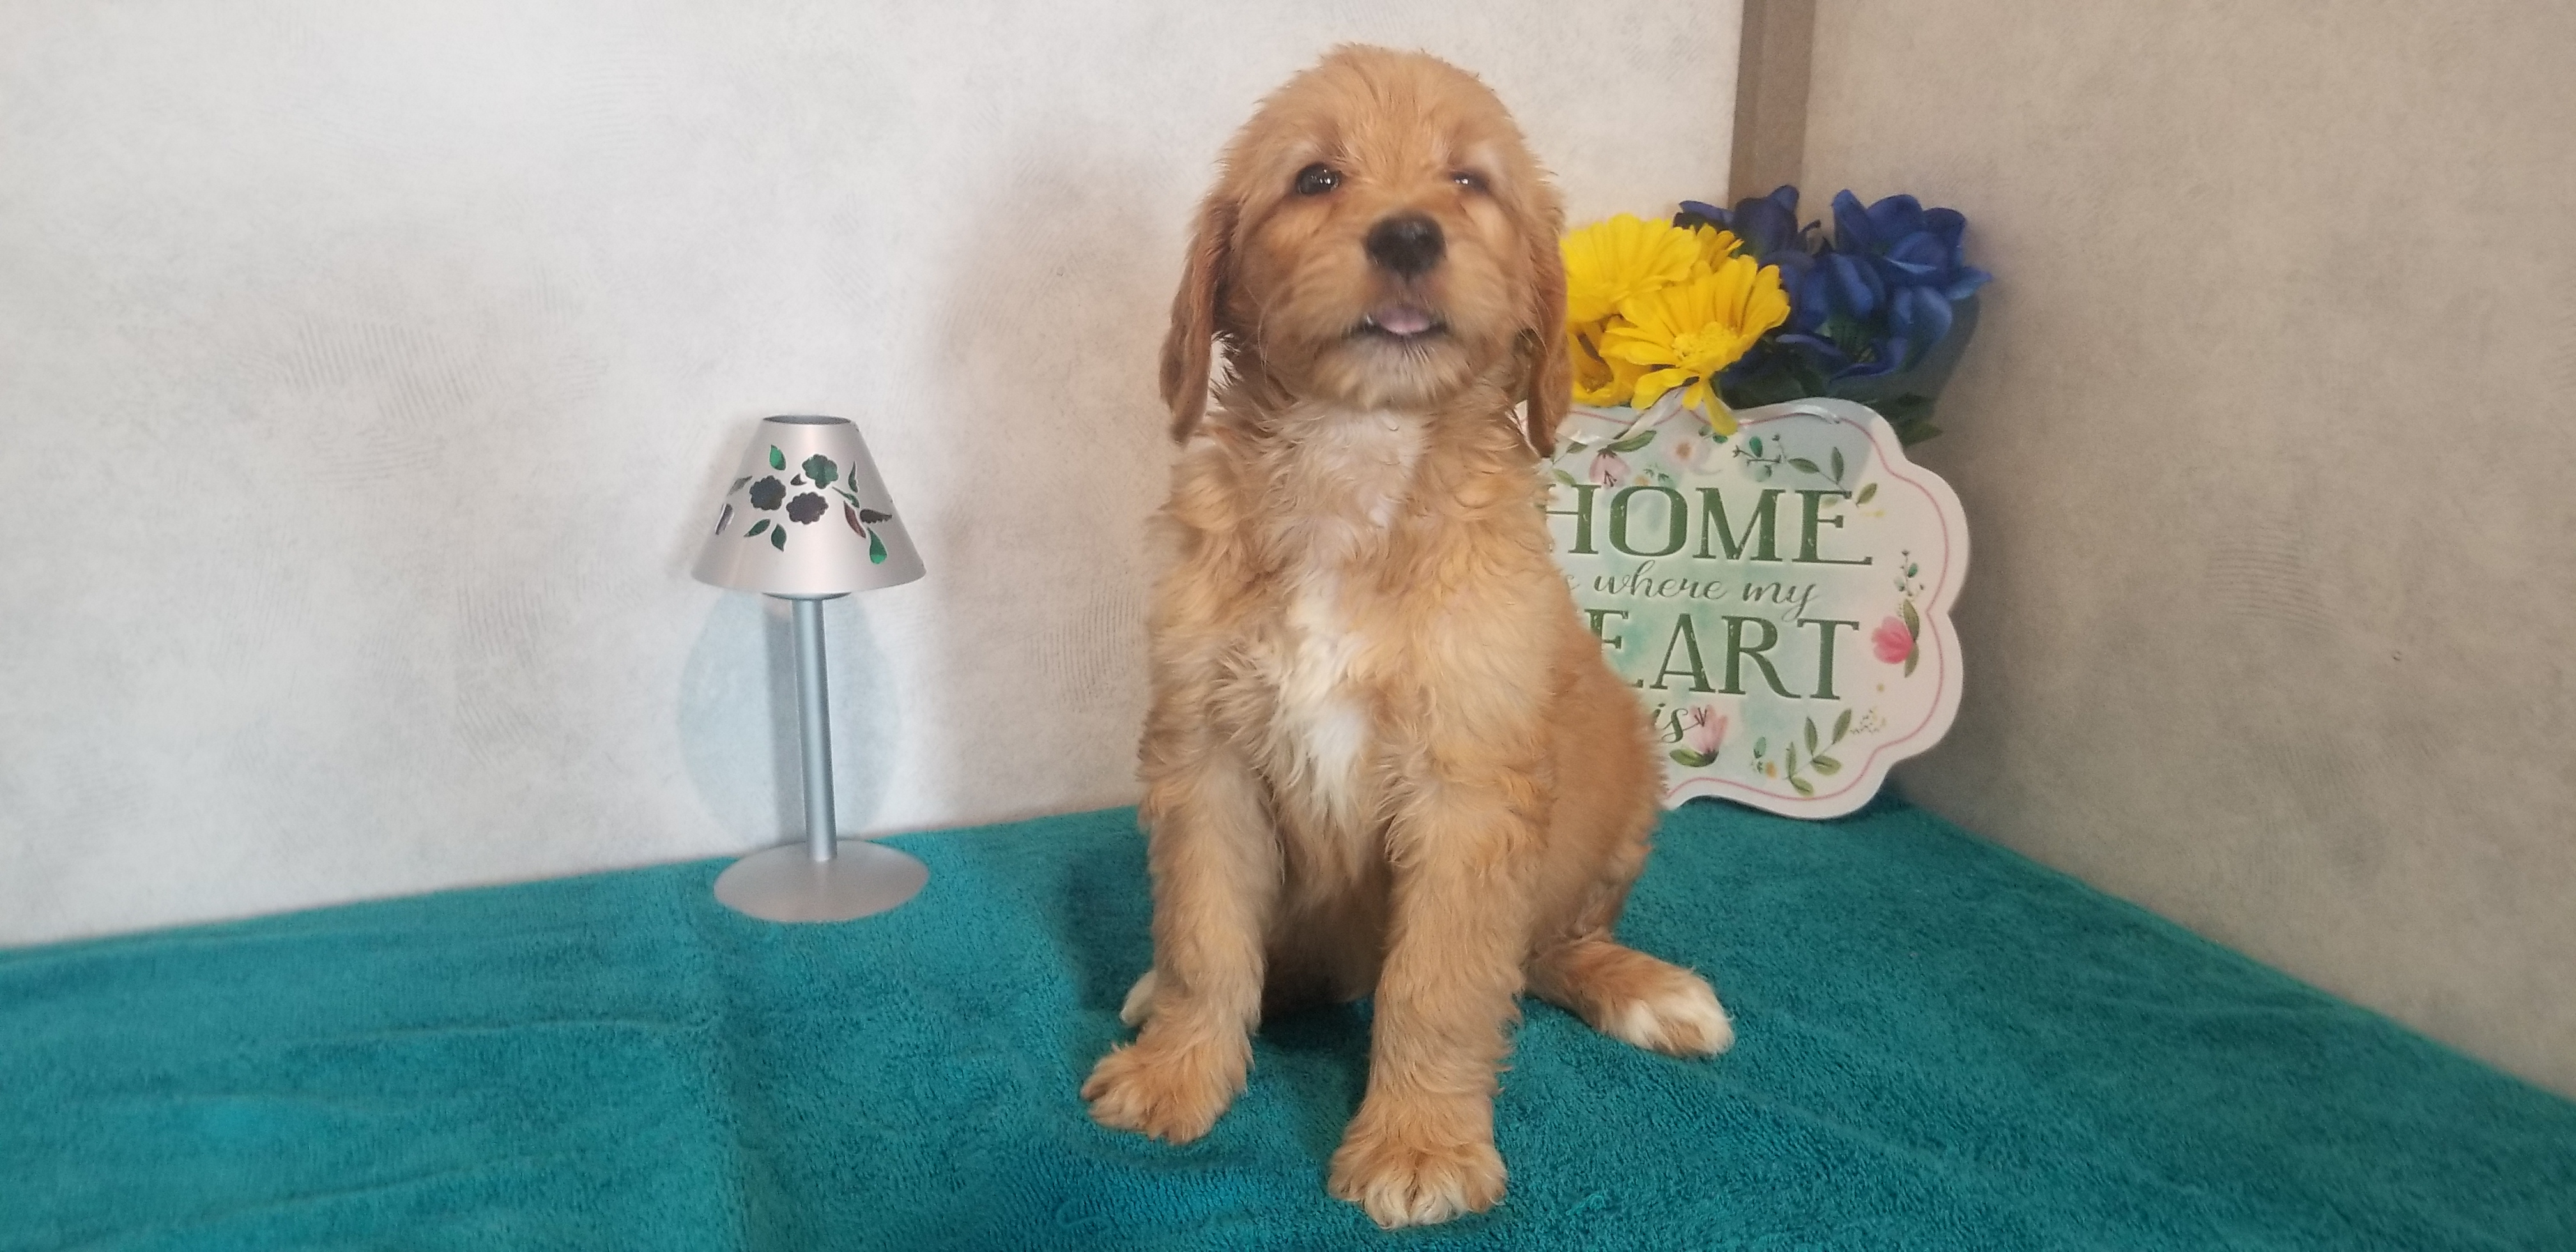 Four Corner Puppies - goldendoodles for sale, Fort Wayne, IN